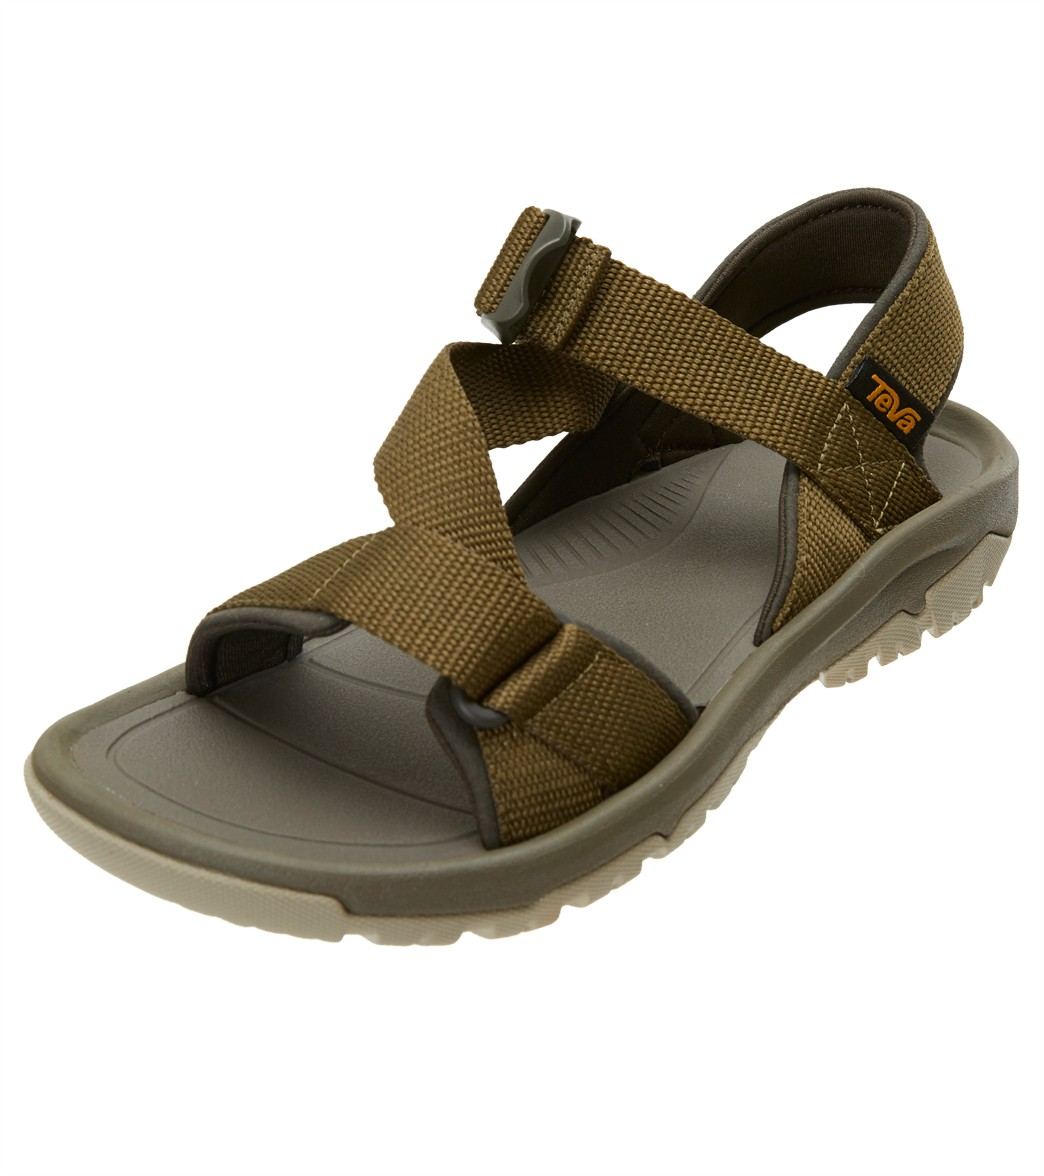 bf508b492 Teva Hurricane Xlt2 Cross Strap Sandal at SwimOutlet.com - Free Shipping